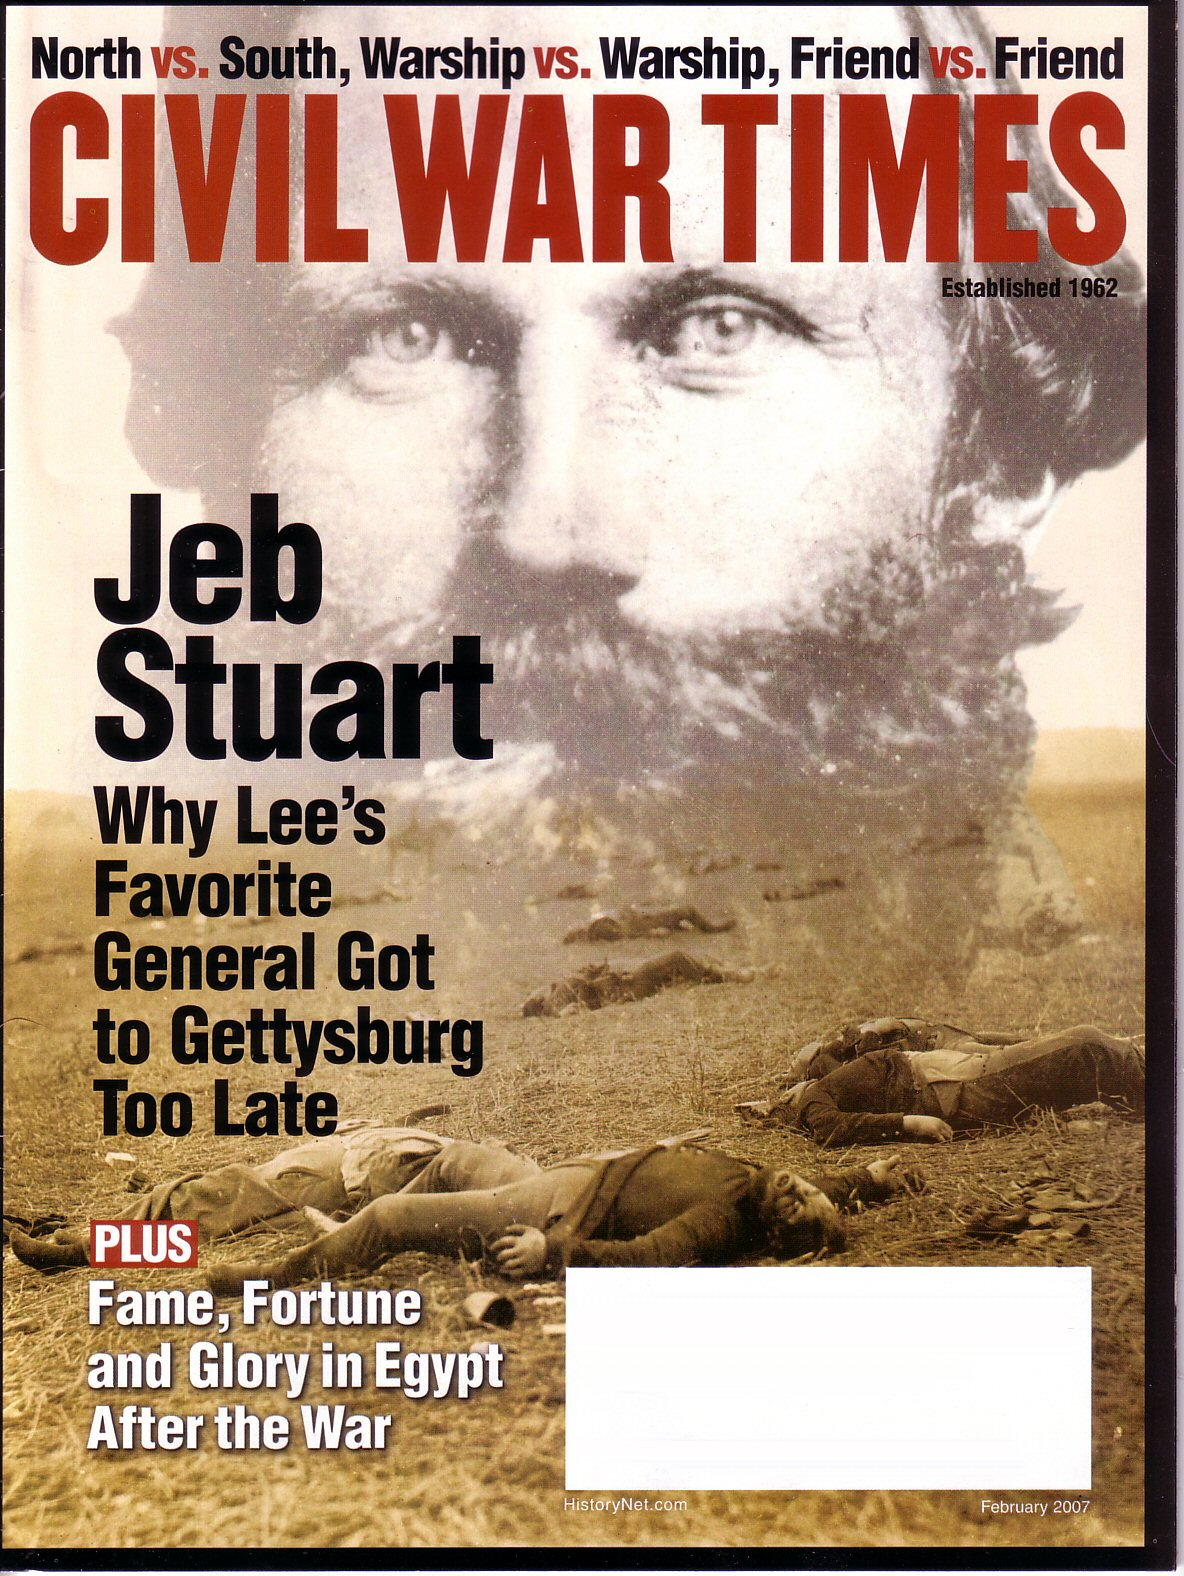 Civil War Times, Volume 46, Number 1 (February 2007)